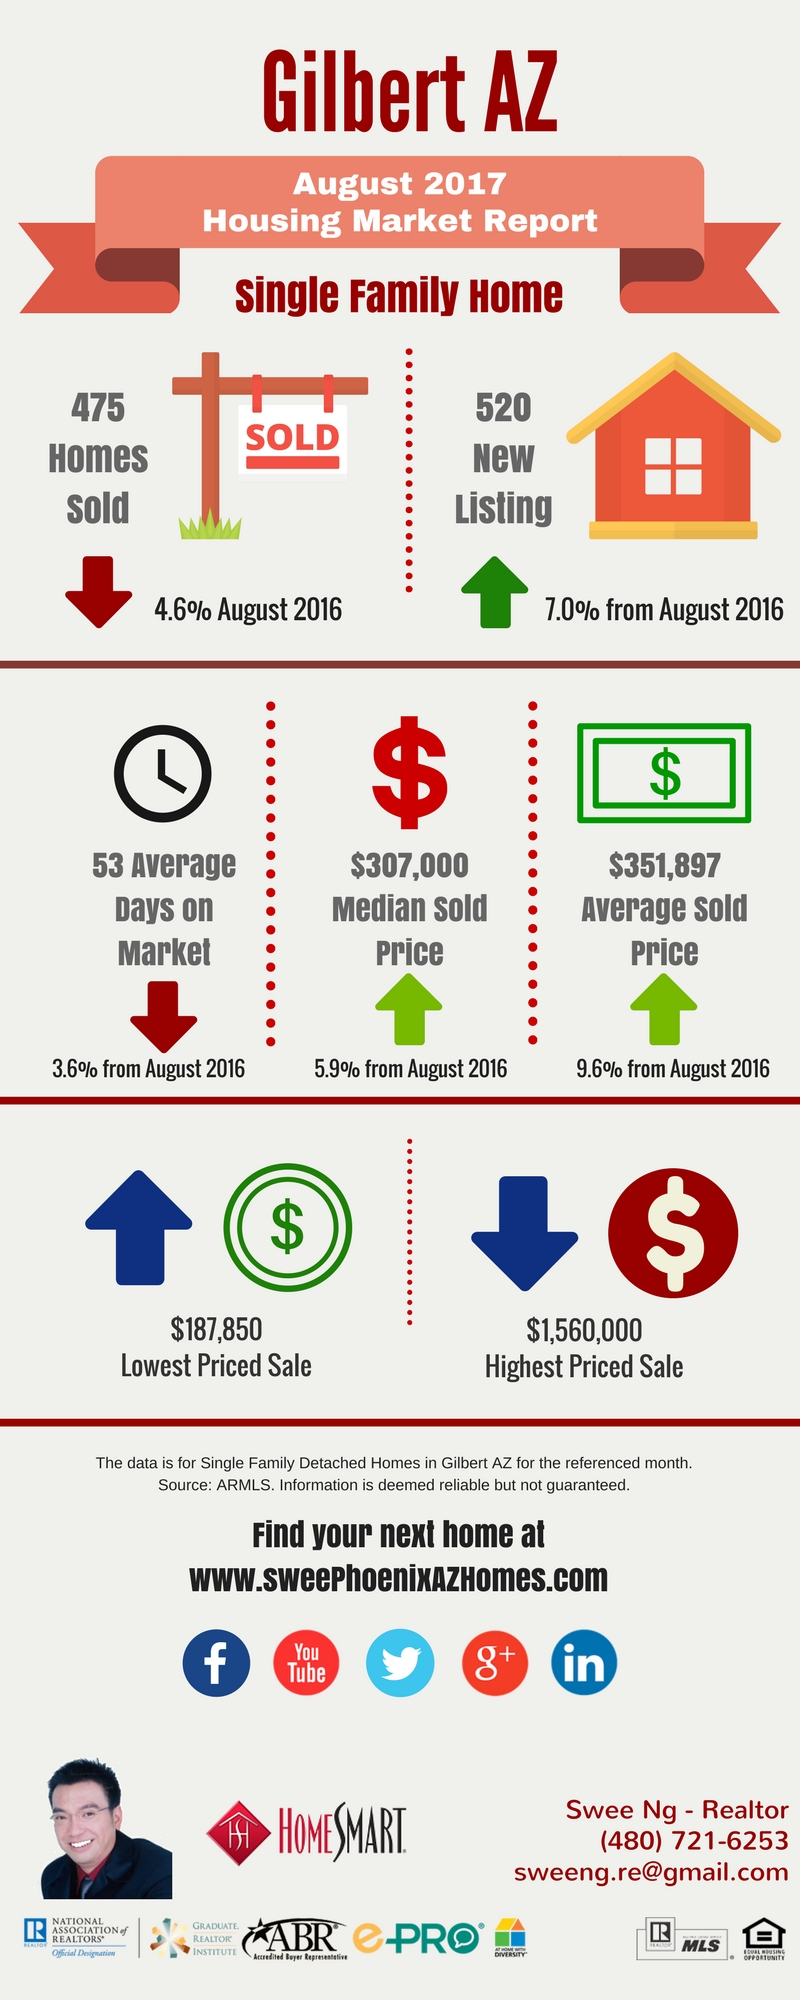 Gilbert AZ Housing Market Trends Report August 2017 by Swee Ng, Real Estate and House Value